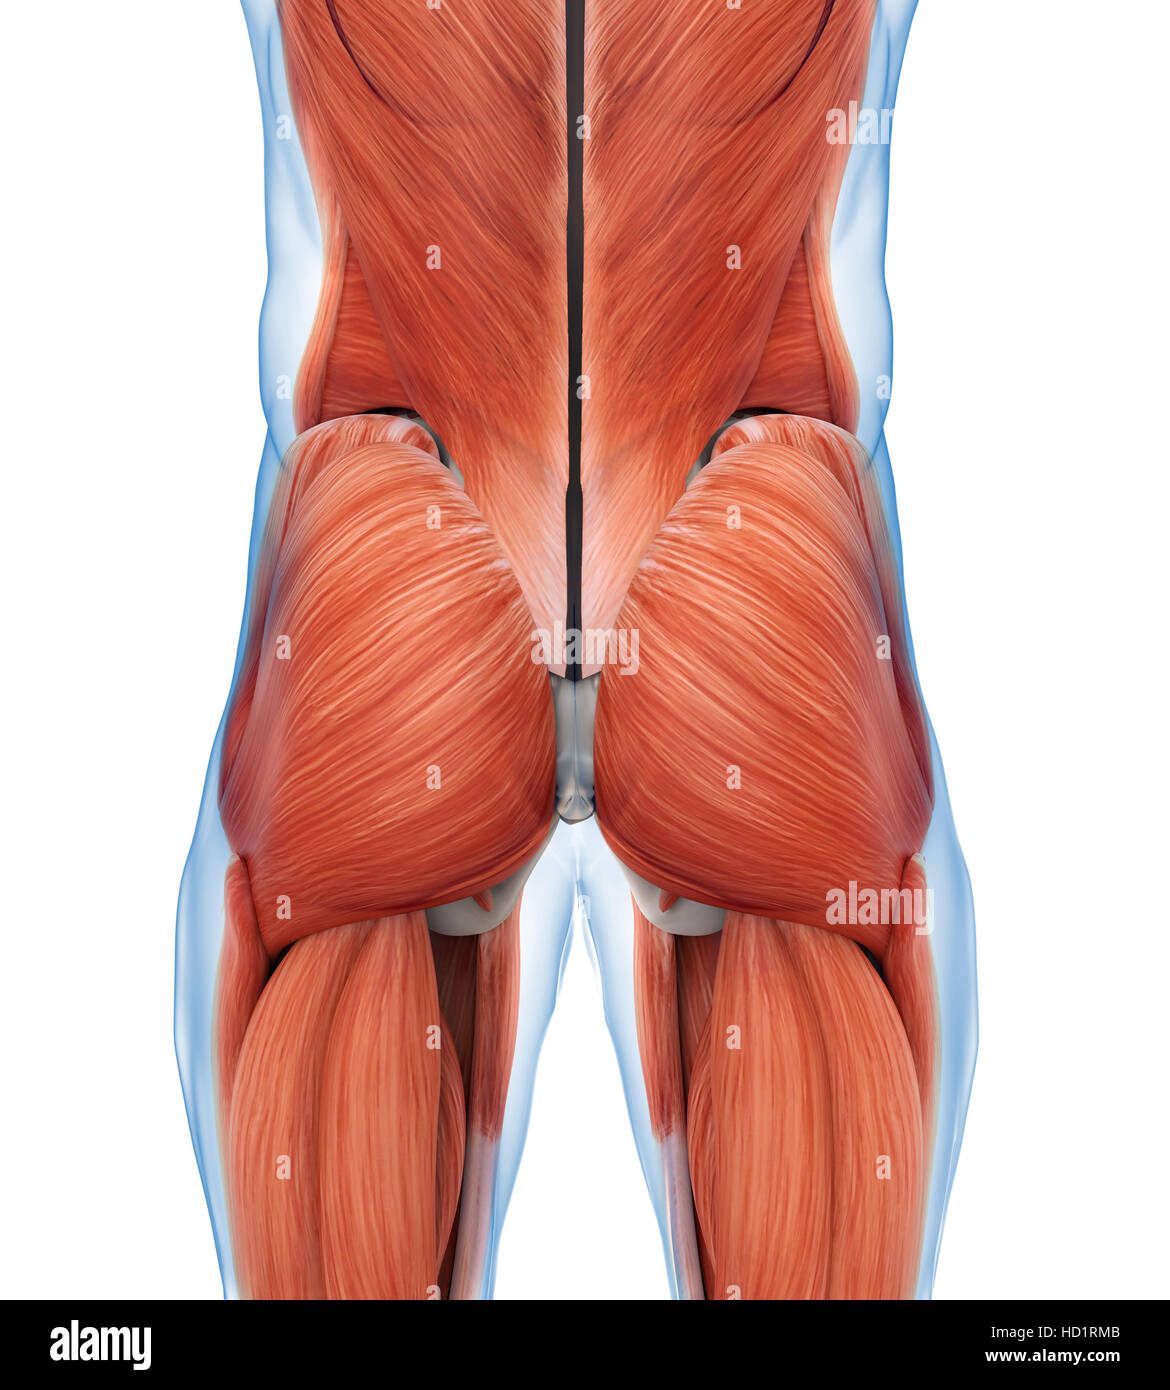 Buttock Muscles Anatomy Stock Photo: 128503659 - Alamy